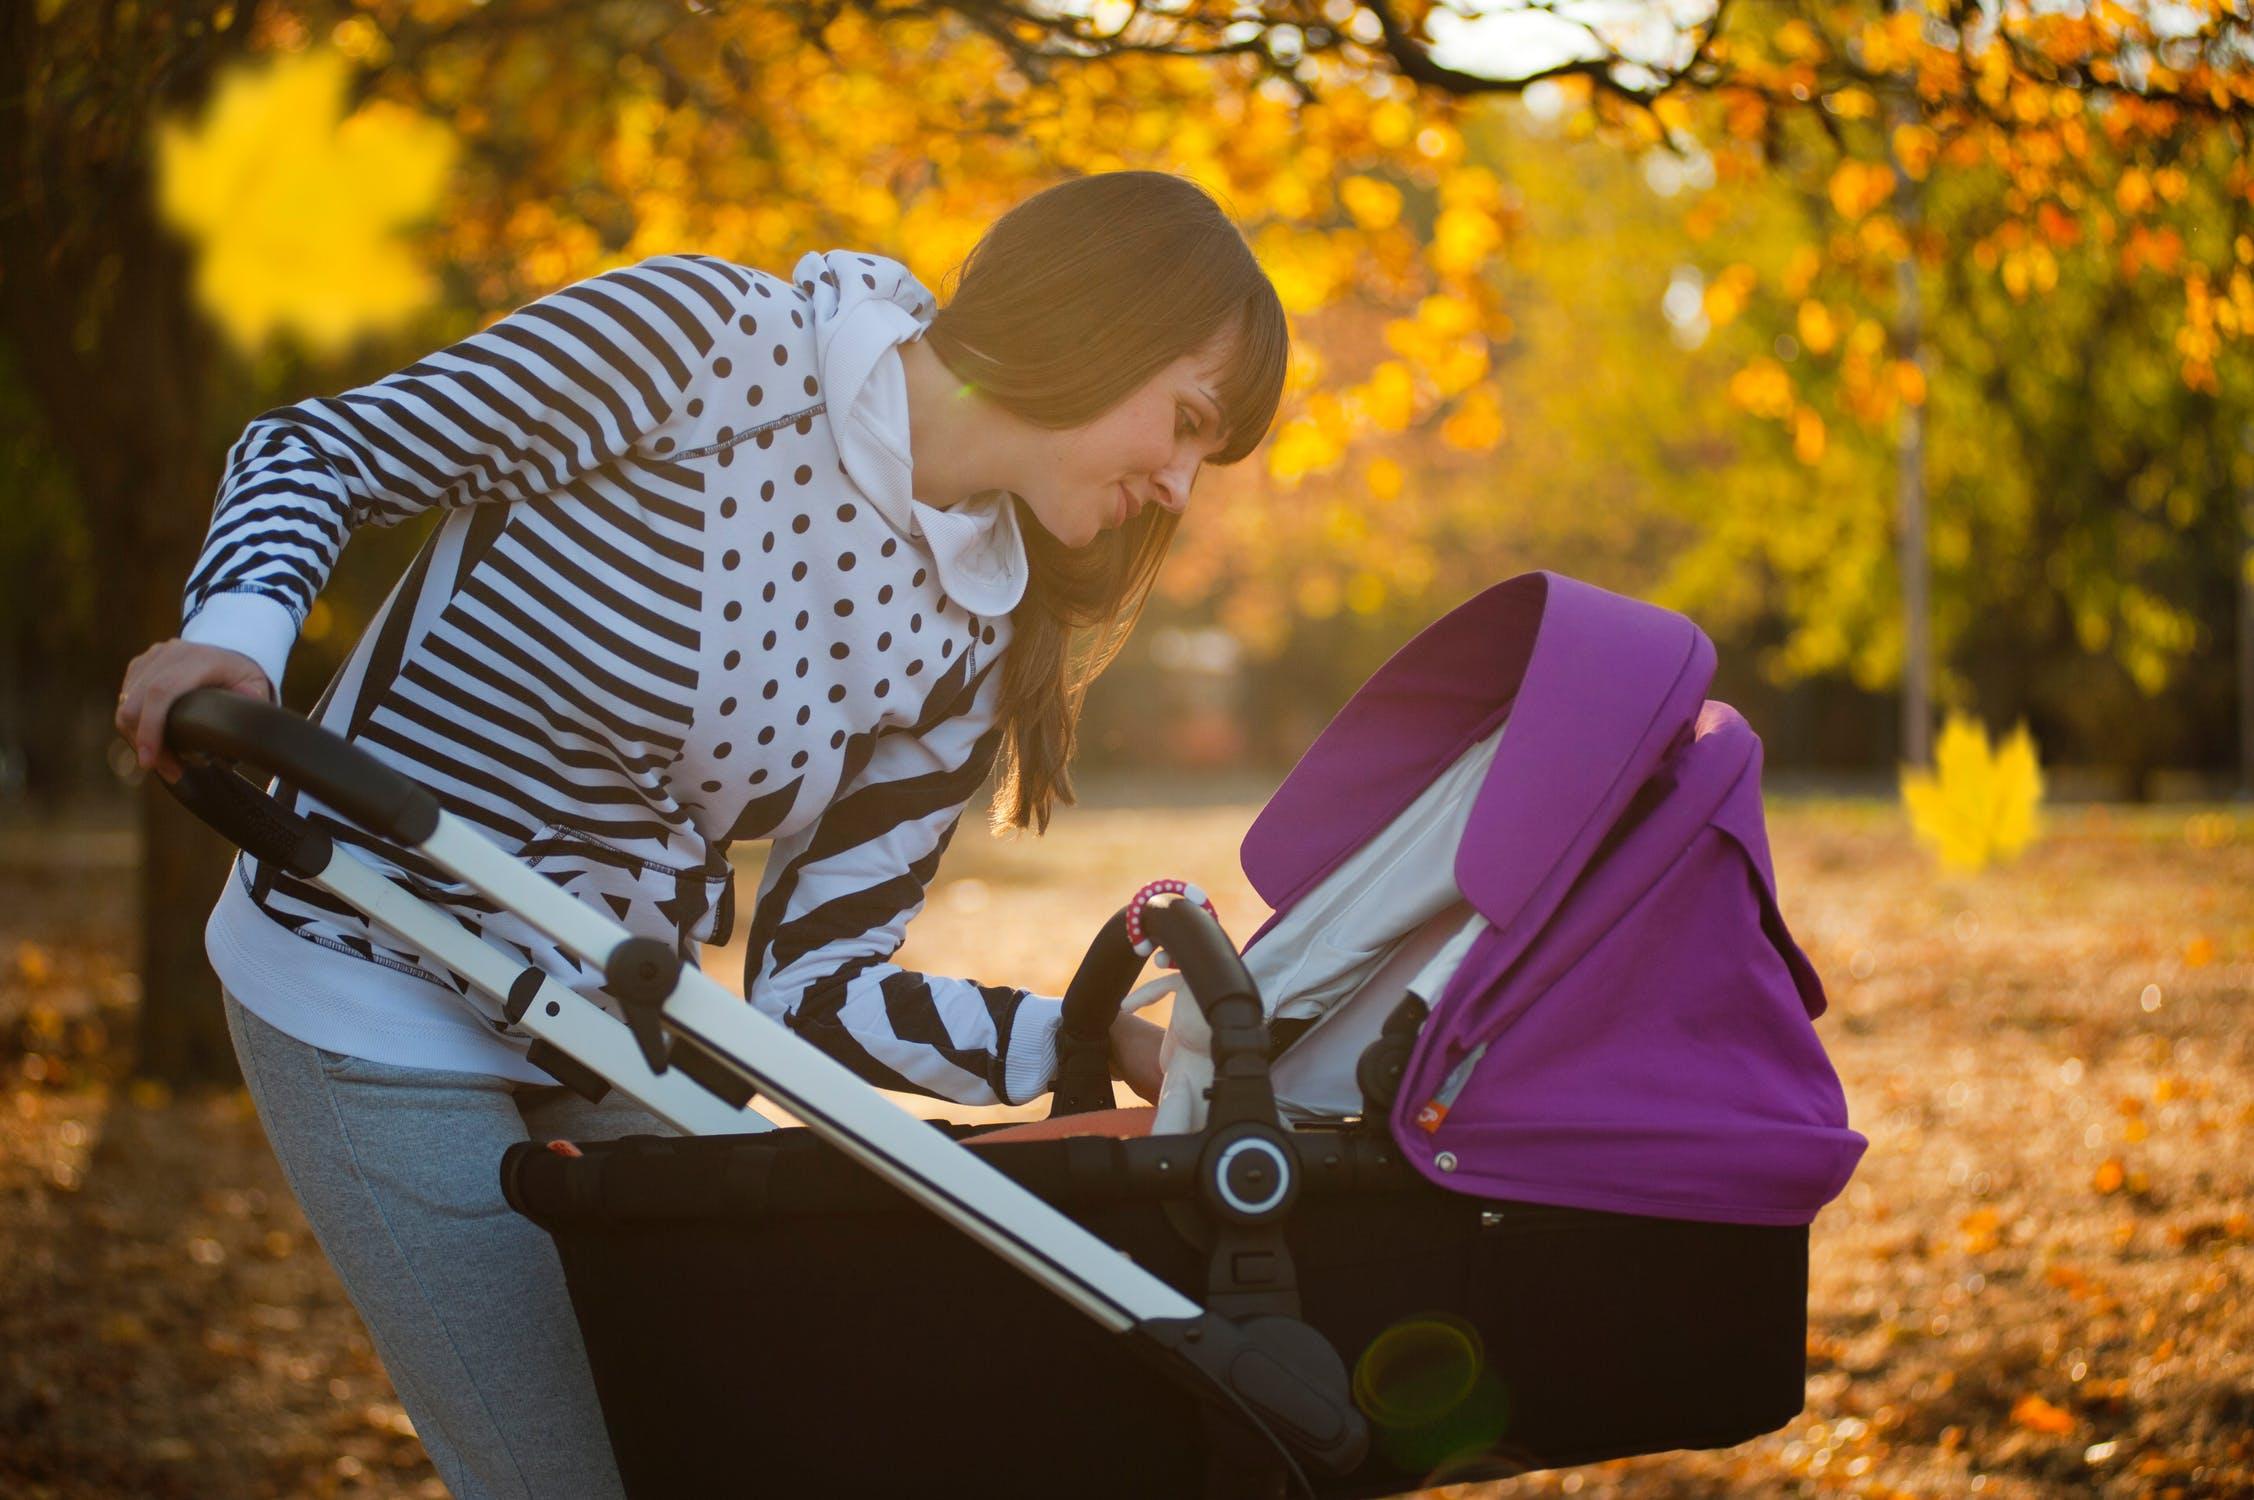 How To Clean A Baby Stroller